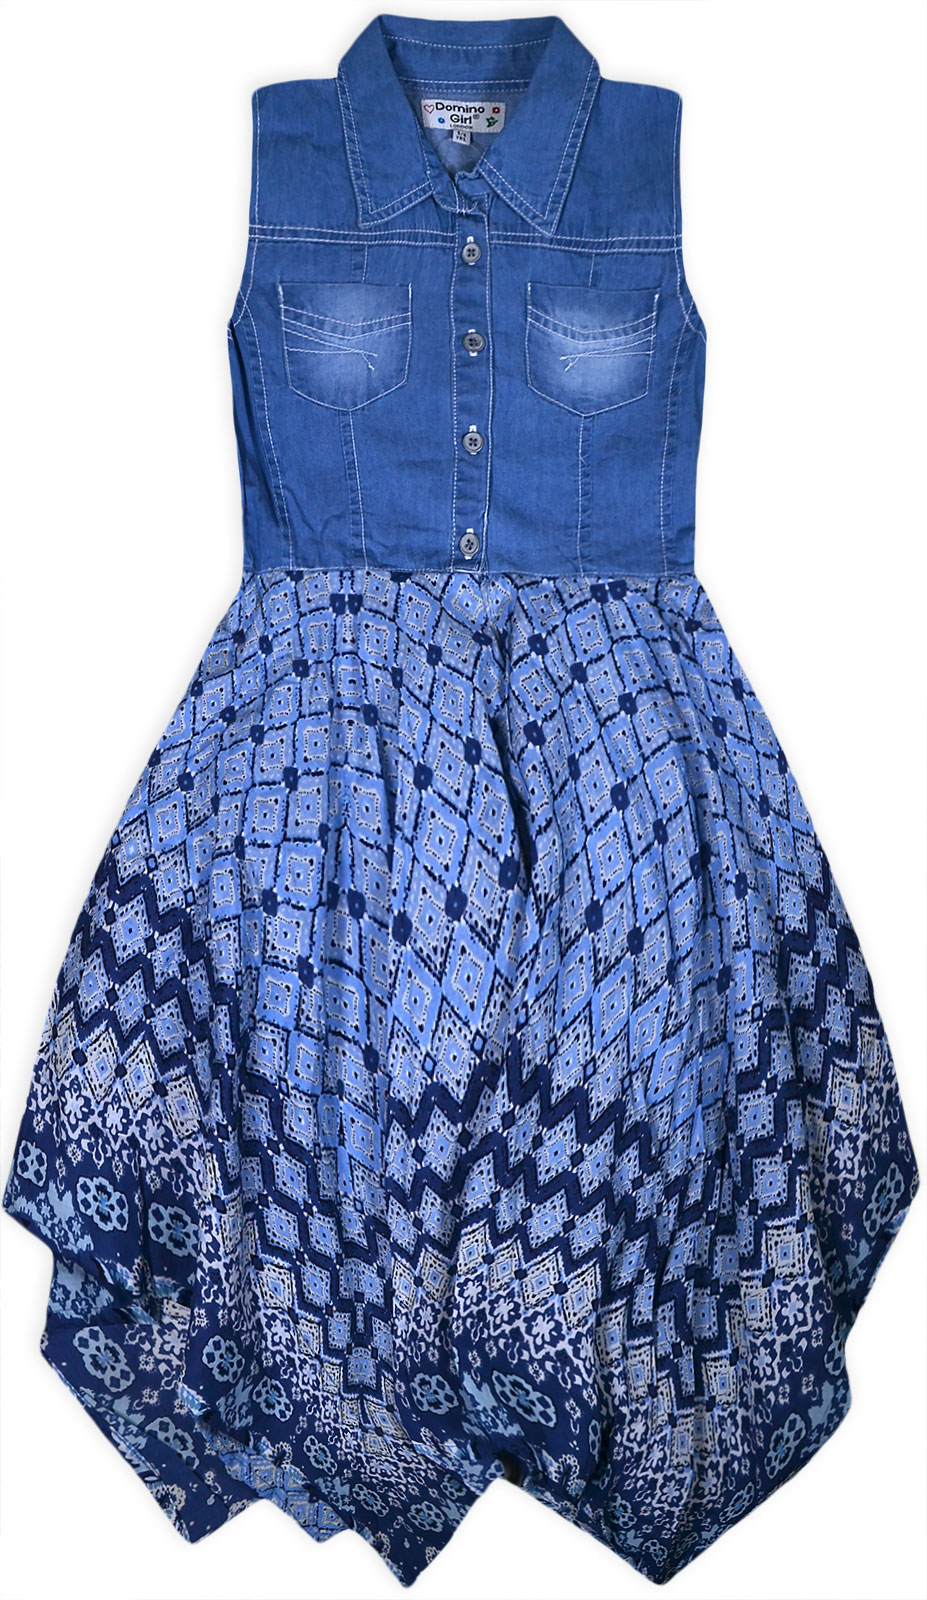 Girls Sleeveless Denim Dress New Kids Jeans Top Cotton Floral Party ...